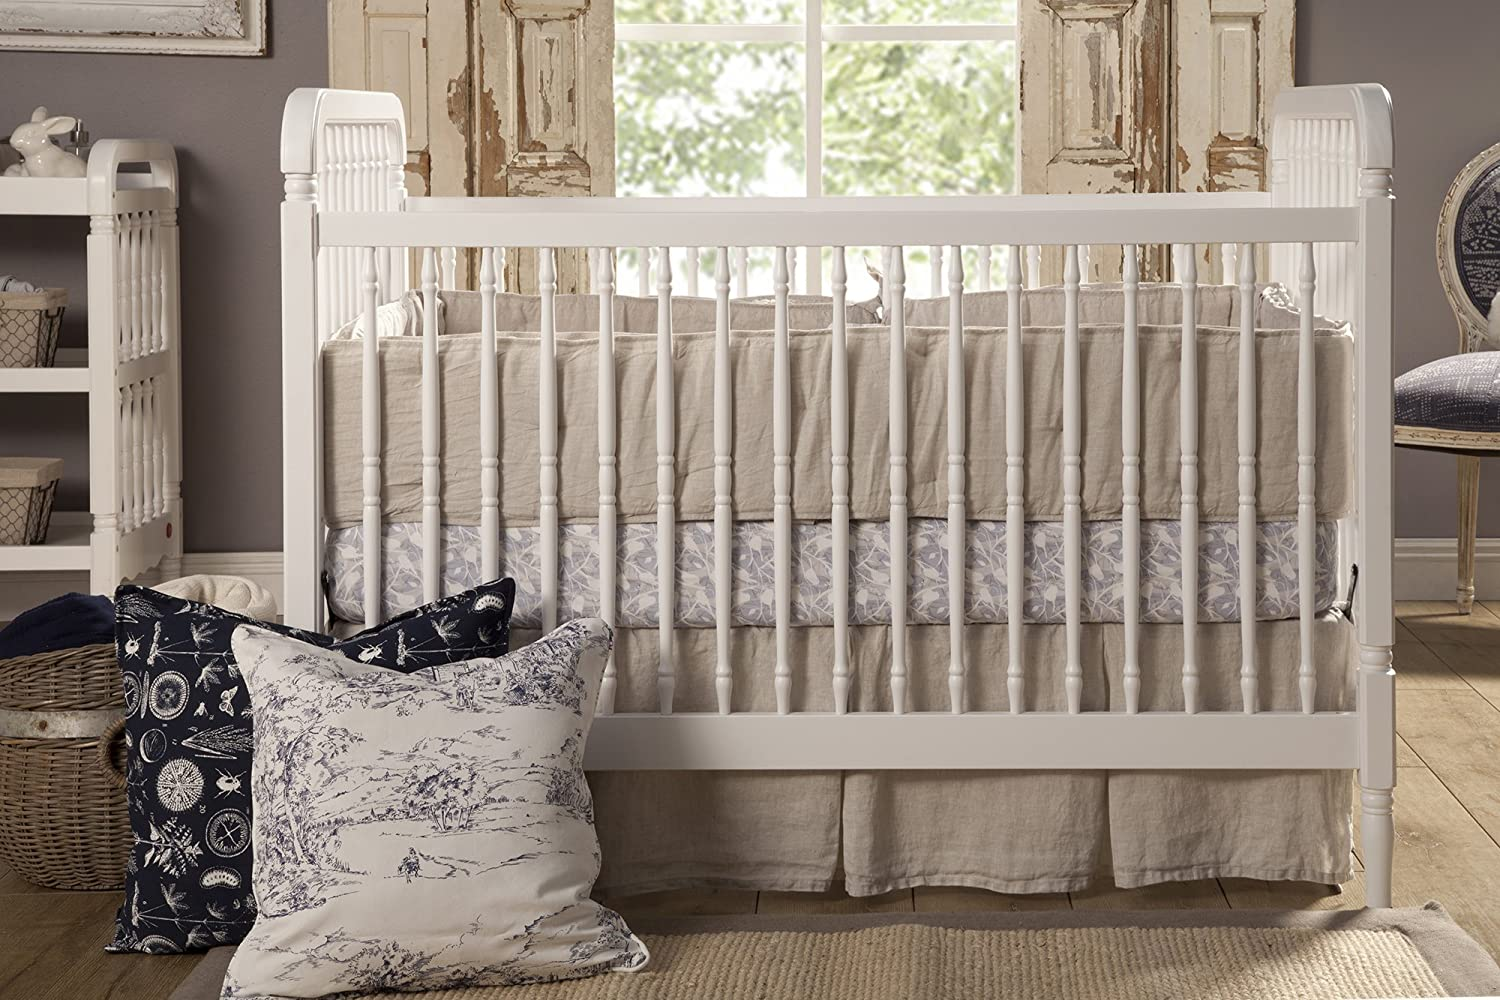 amazoncom franklin u0026 ben liberty 3in1 convertible crib with toddler bed conversion kit baby